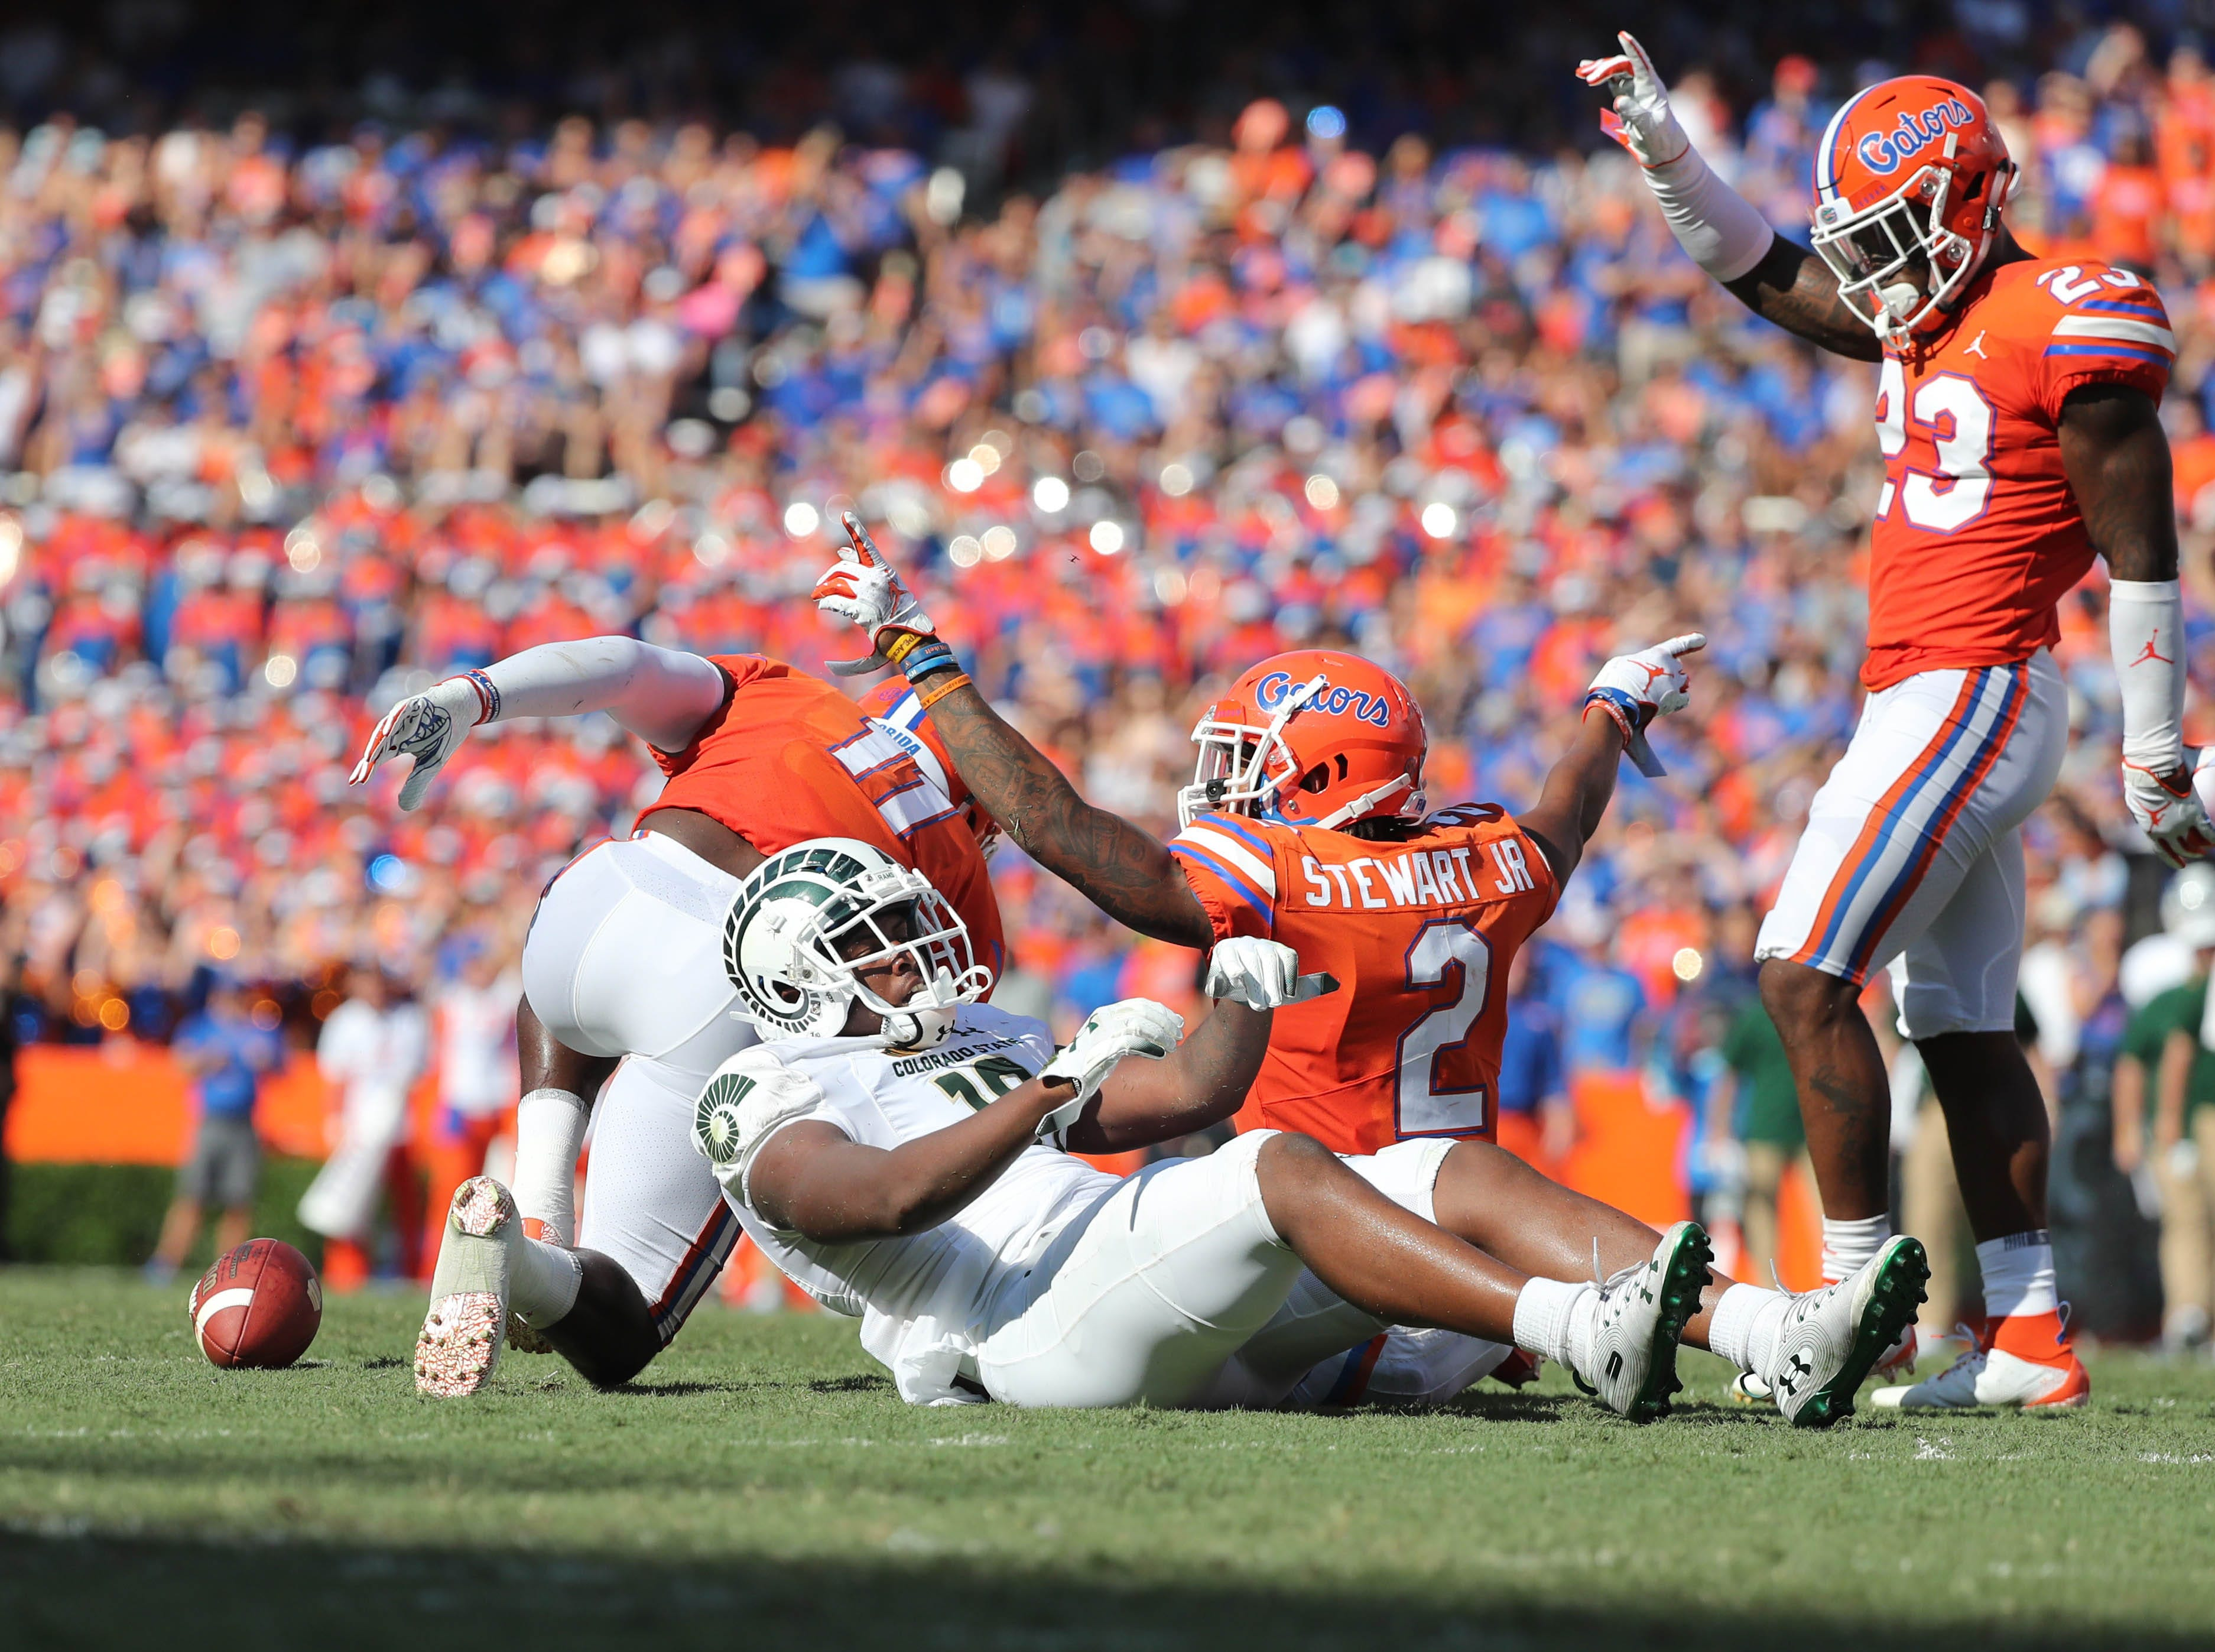 Sep 15, 2018; Gainesville, FL, USA; Florida Gators linebacker Vosean Joseph (11) , defensive back Brad Stewart Jr. (2) and Fdefensive back Chauncey Gardner-Johnson (23) break up a pass to Colorado State Rams tight end Cameron Butler (16) during the first quarter at Ben Hill Griffin Stadium. Mandatory Credit: Kim Klement-USA TODAY Sports